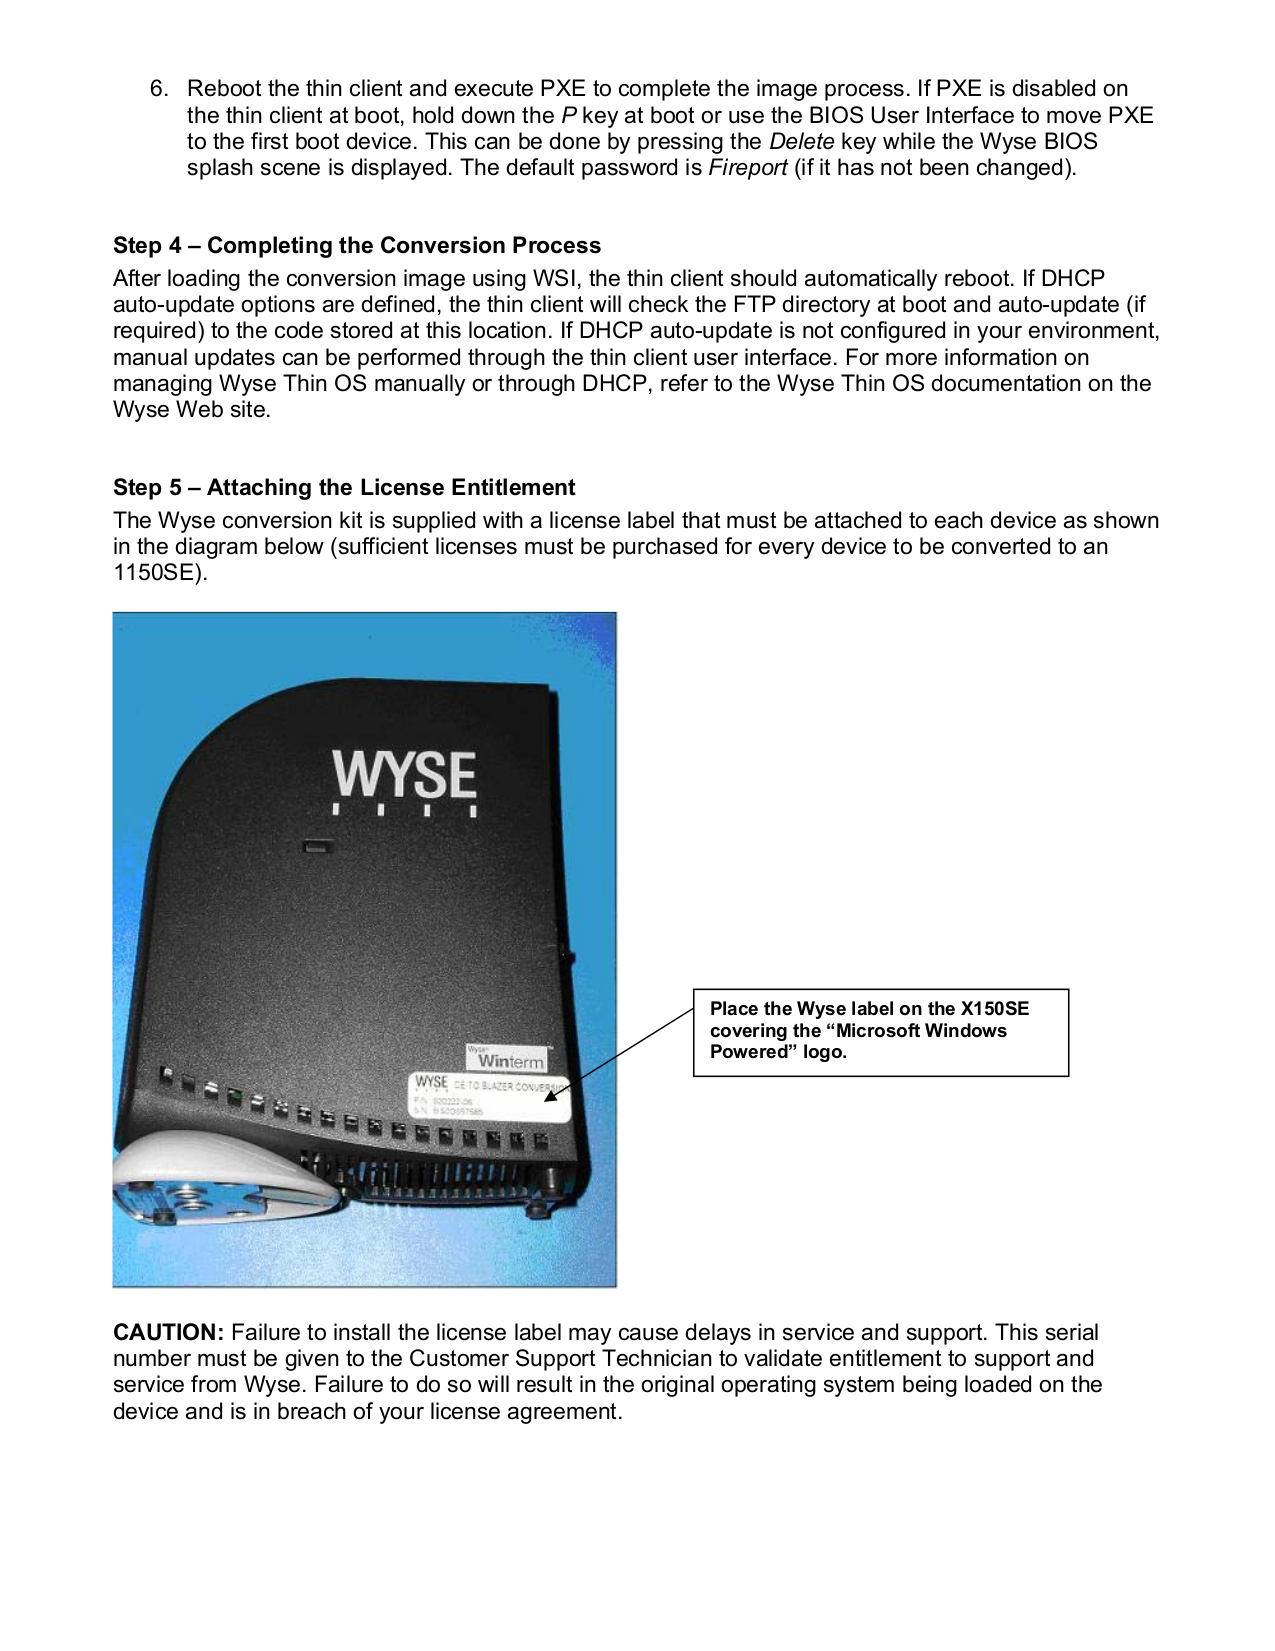 PDF manual for Wyse Desktop Winterm 3150SE